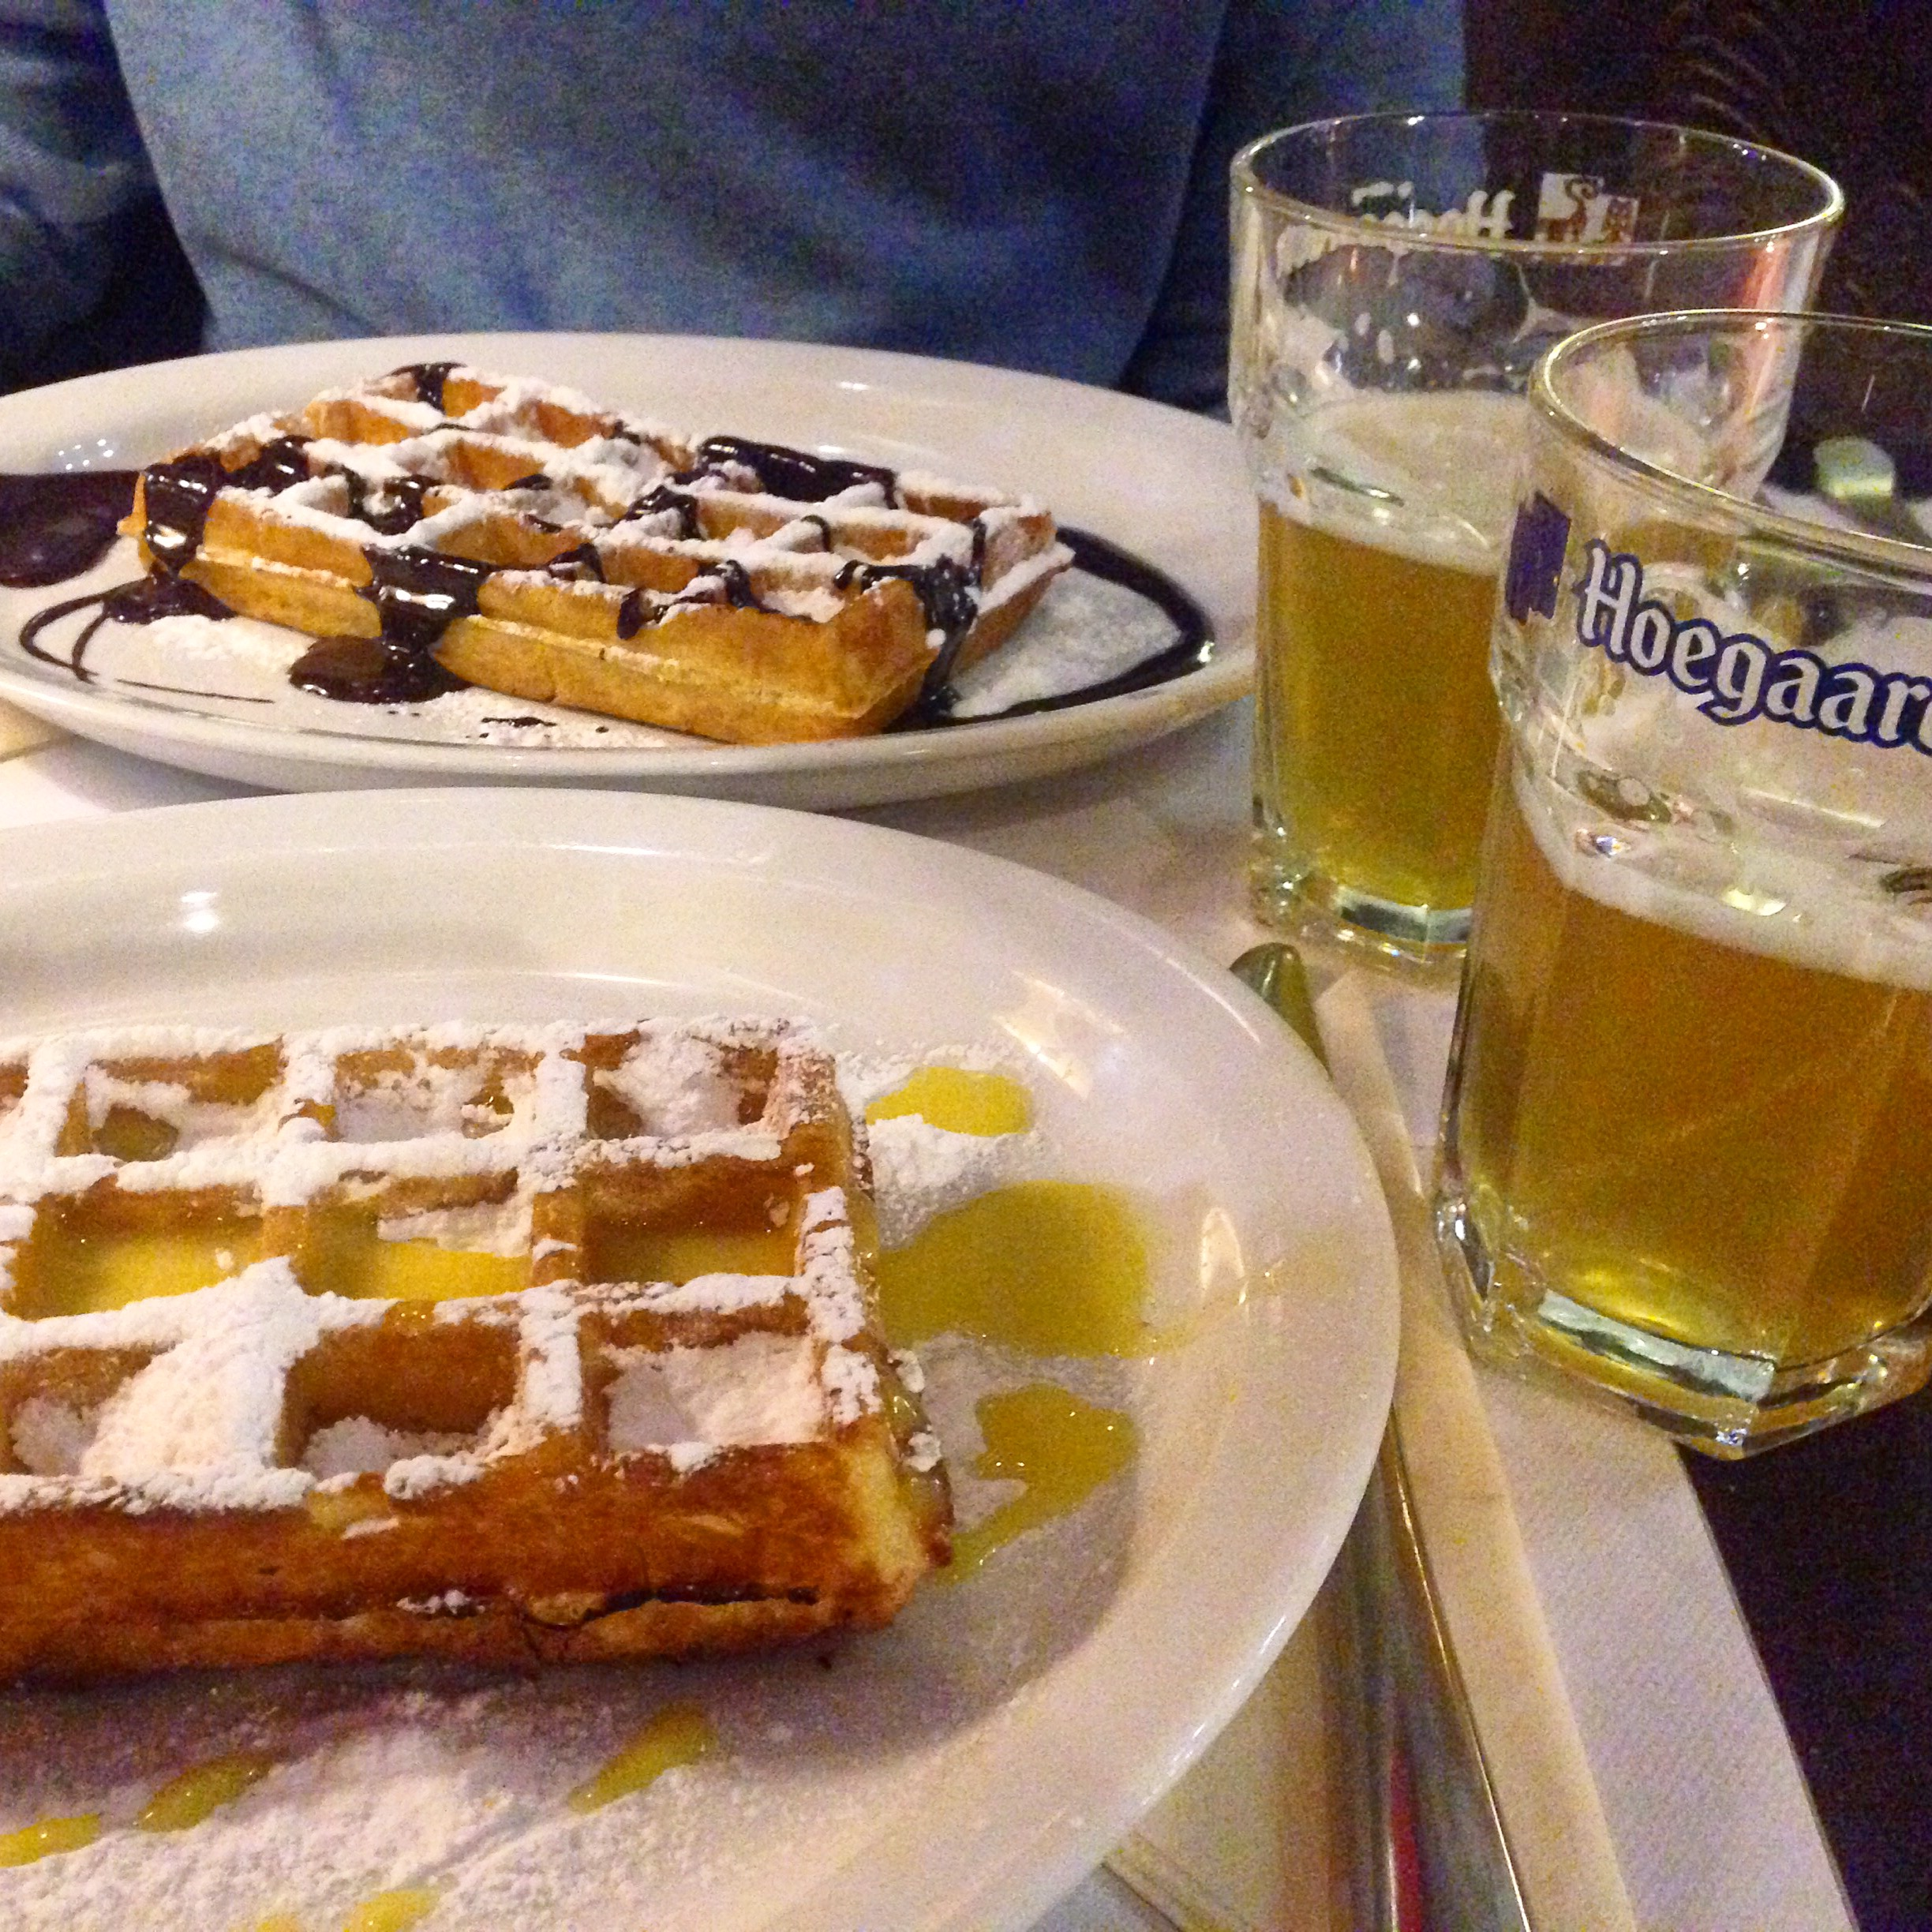 Beer and waffles...do you need anything else in life?